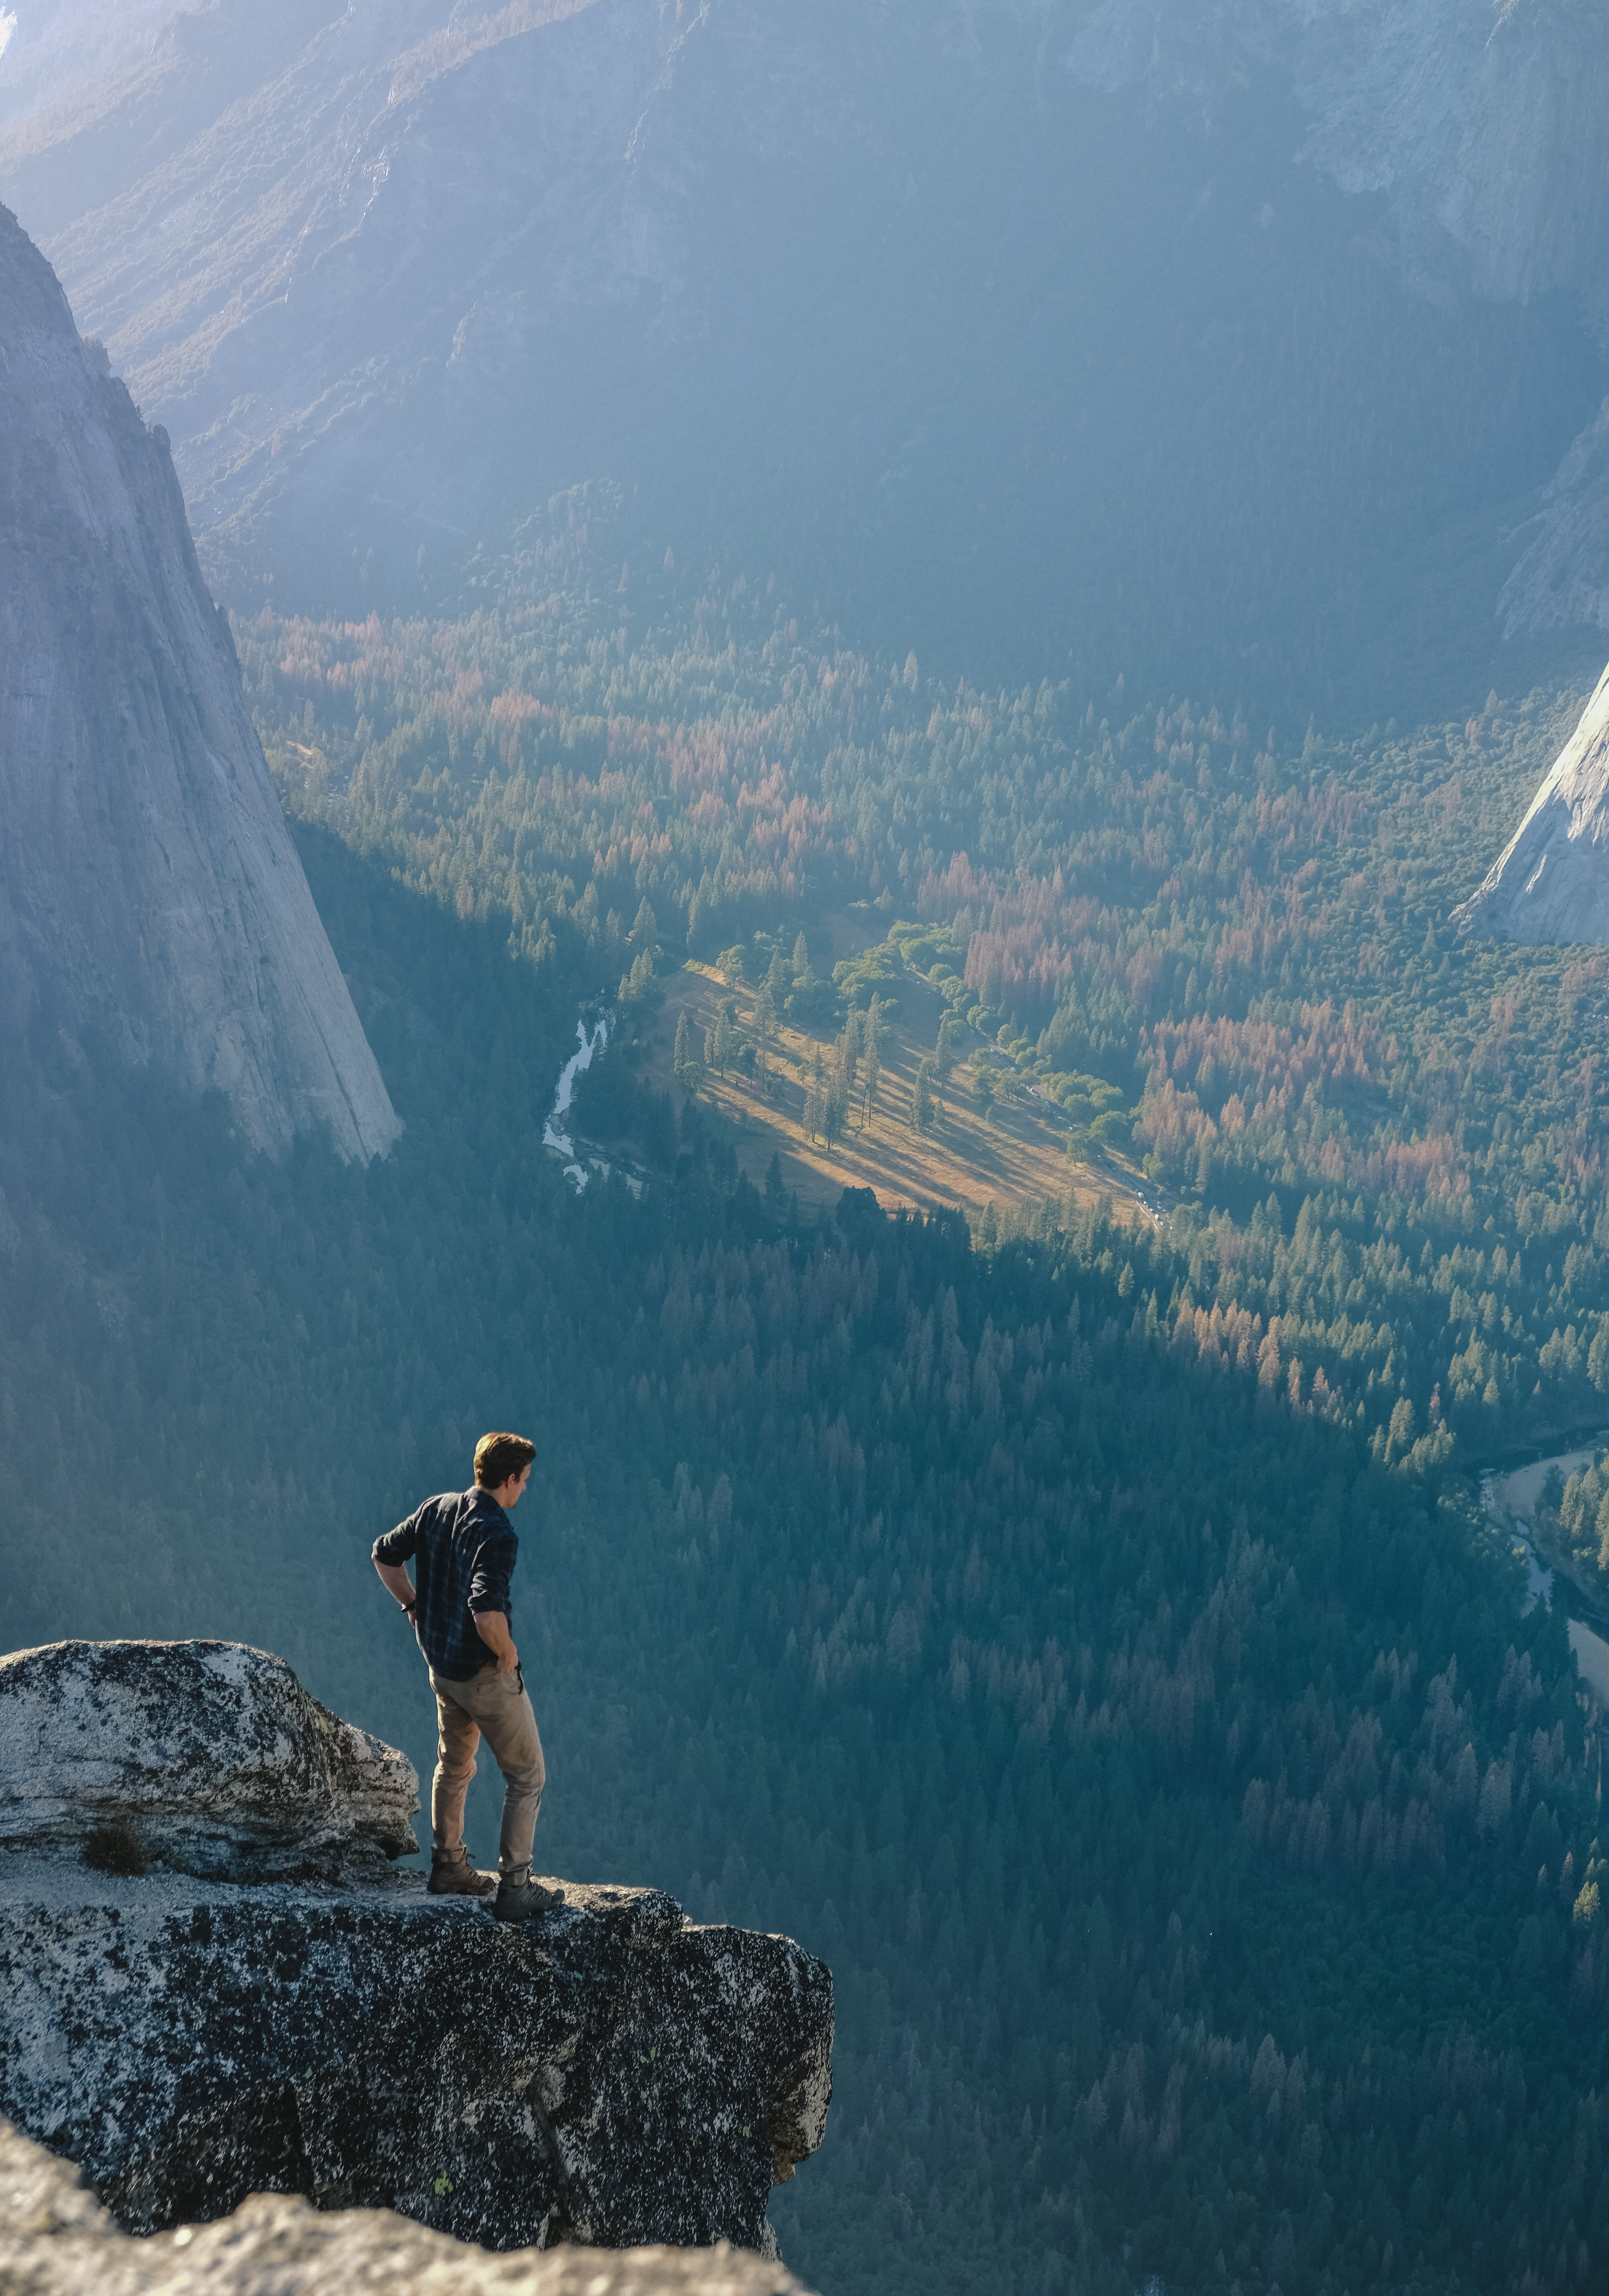 A man standing on a ledge with a view on the floor of Yosemite Valley